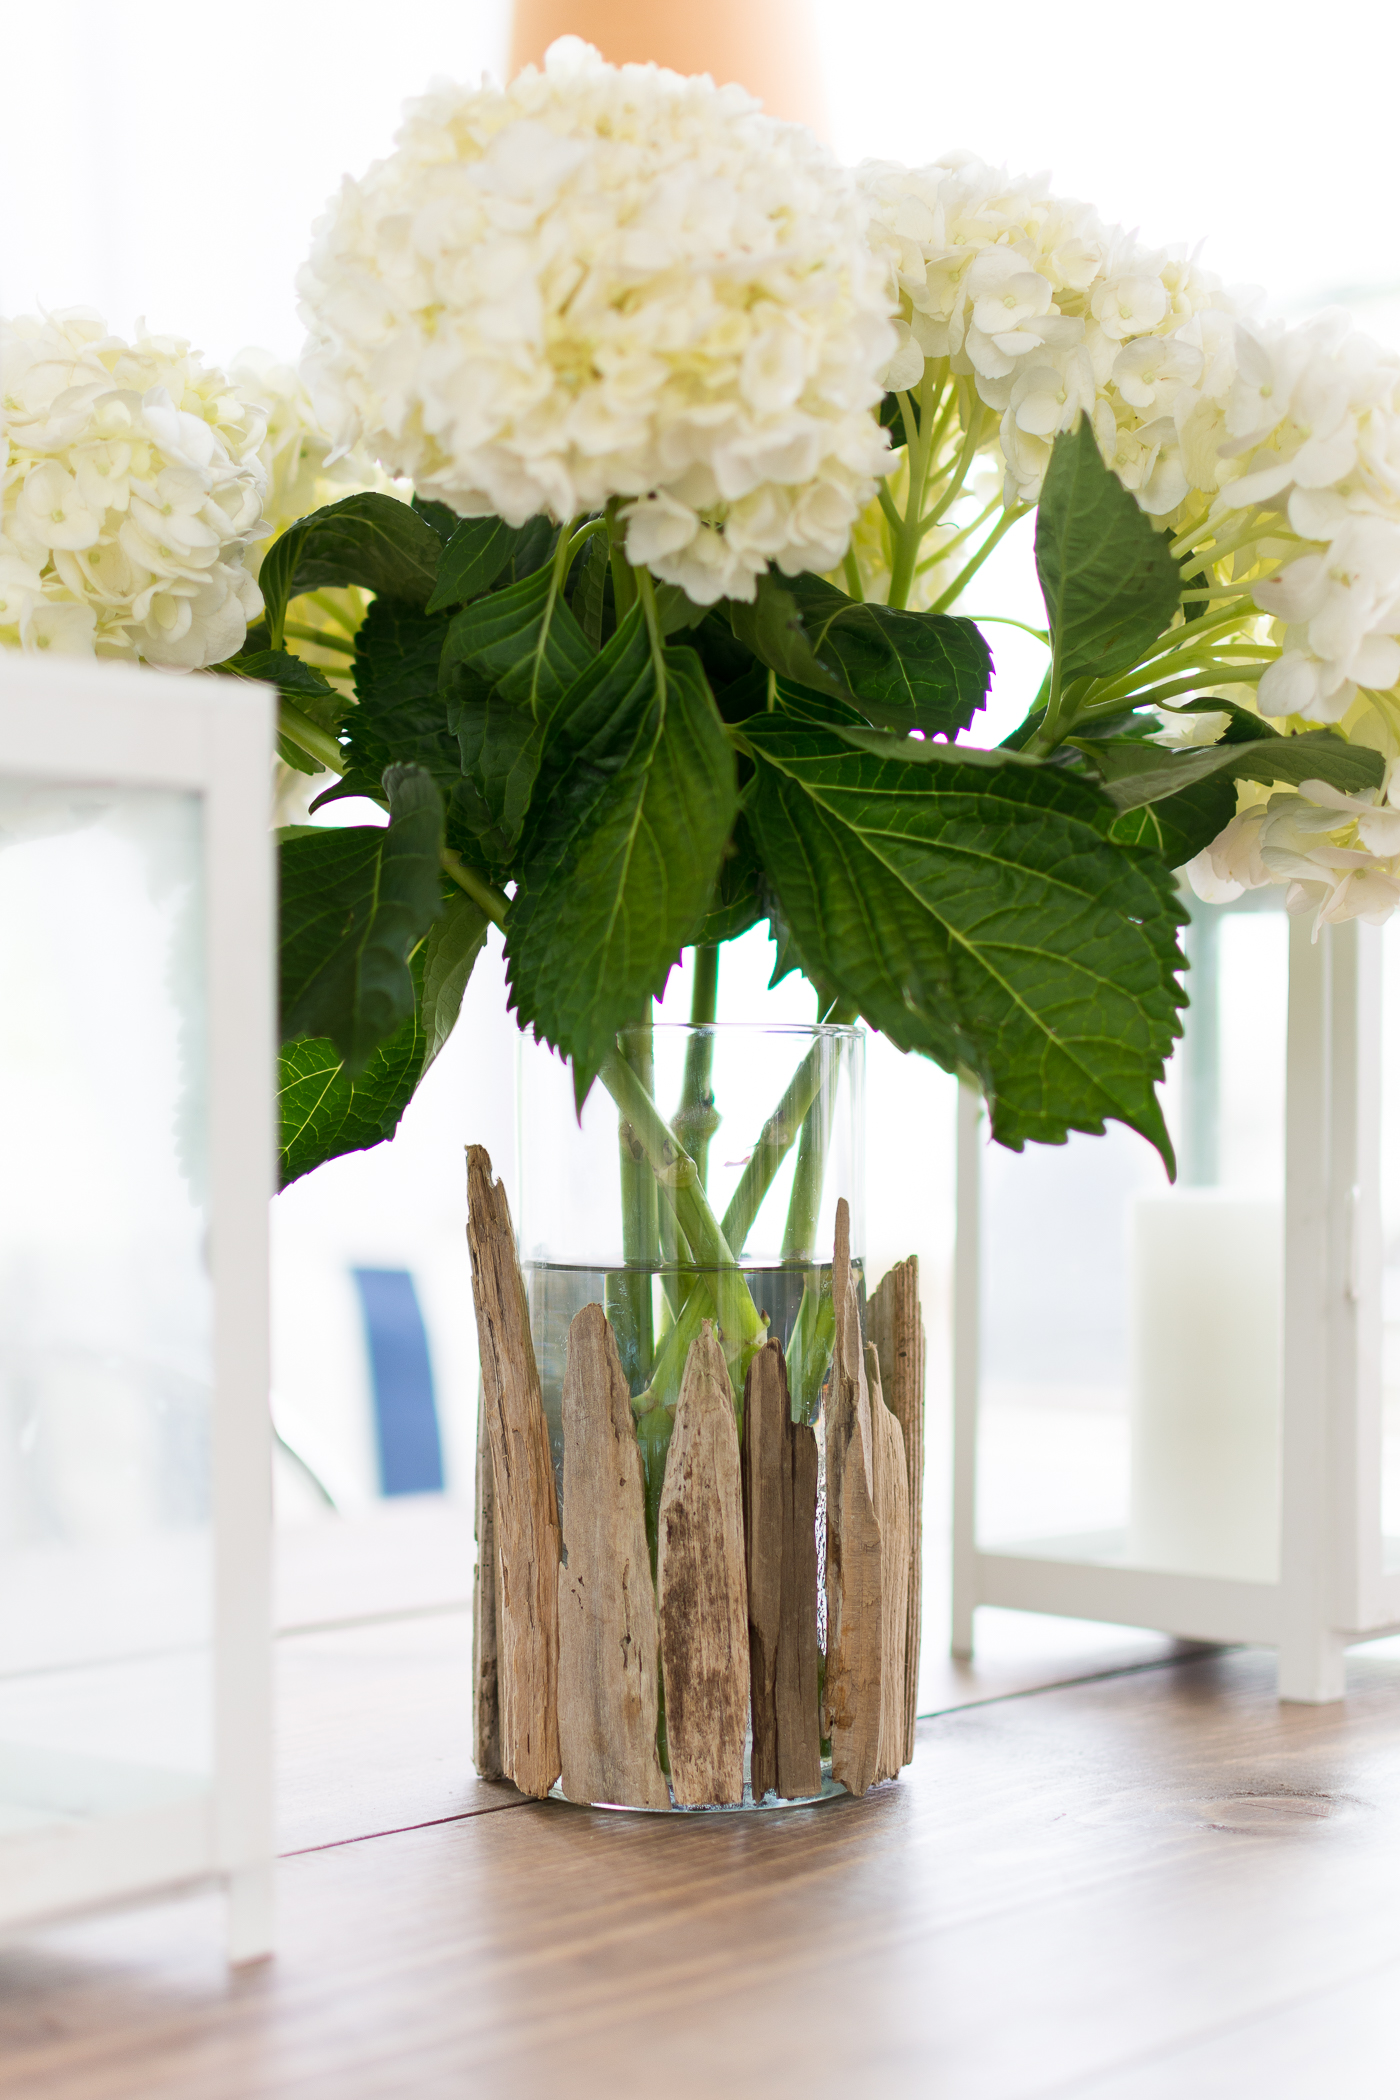 Beach Decor Ideas with Driftwood